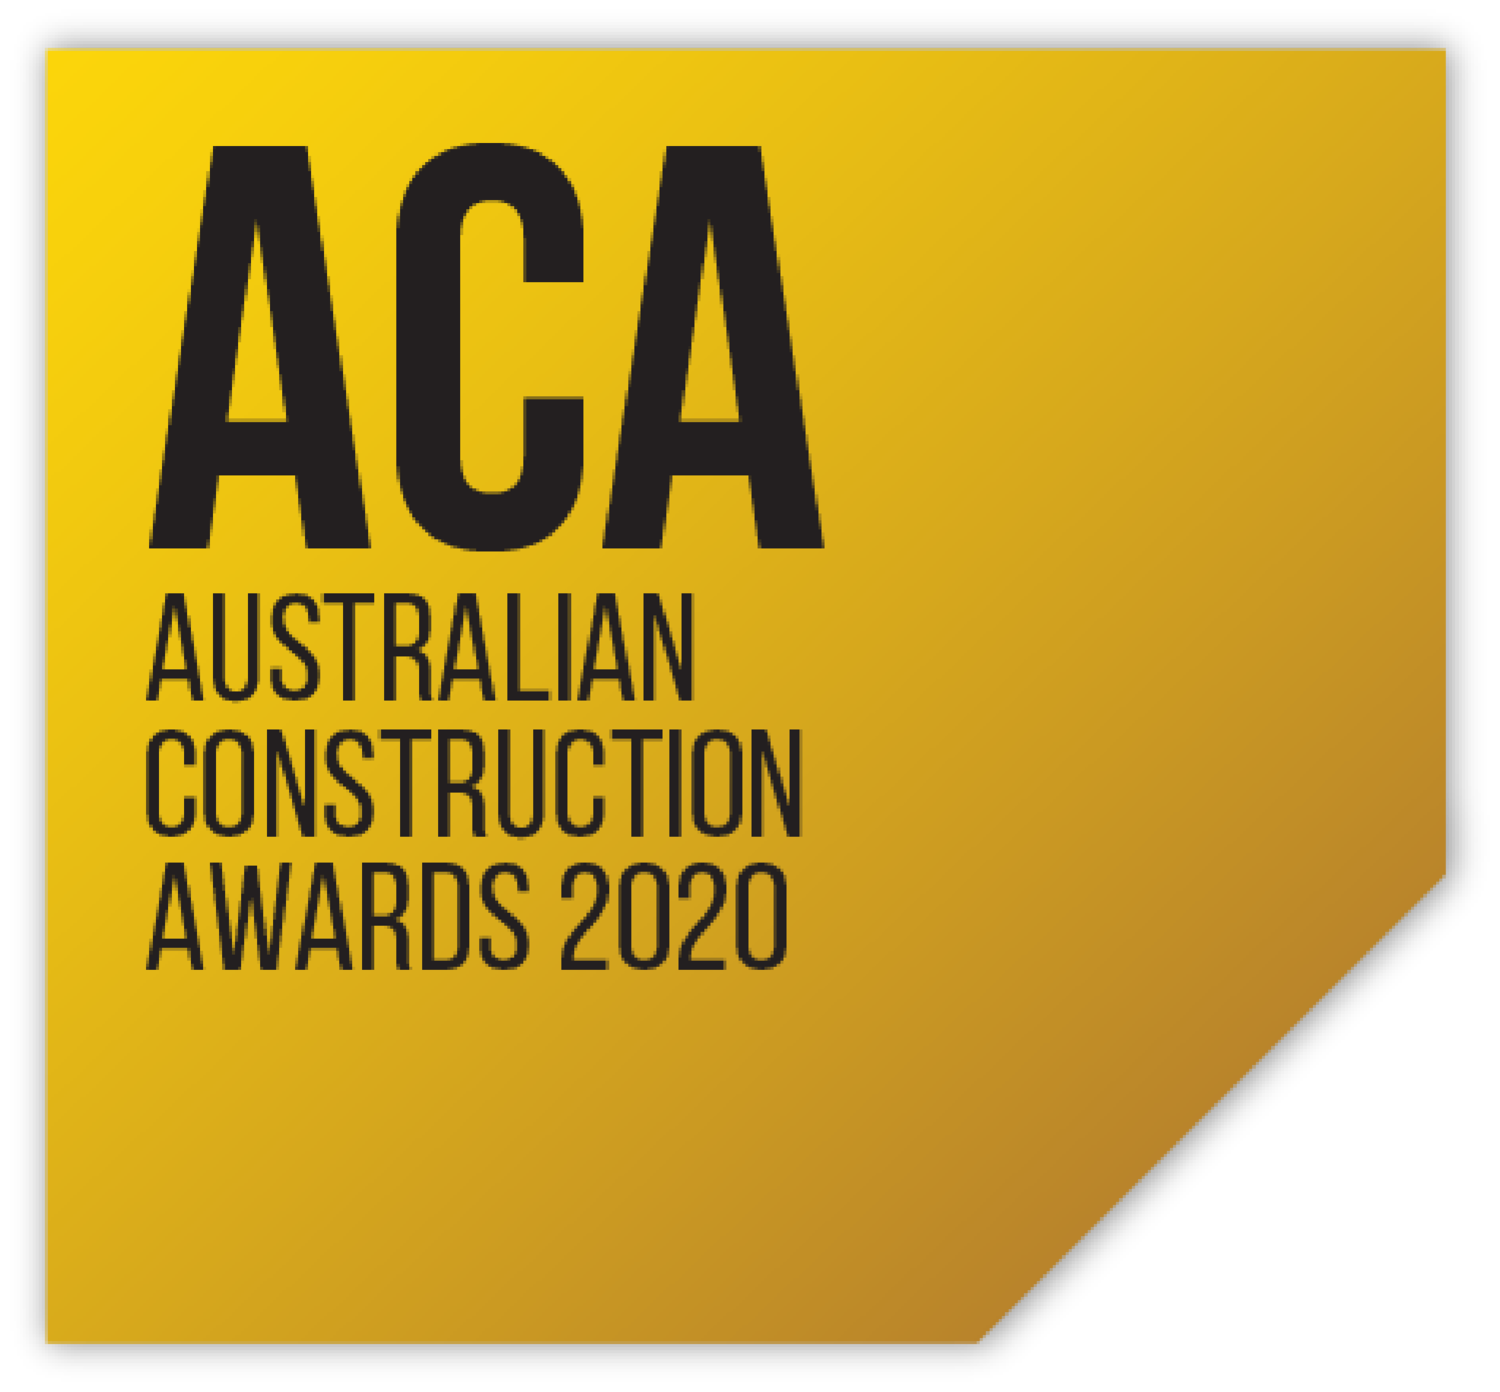 Australian Construction Awards 2020